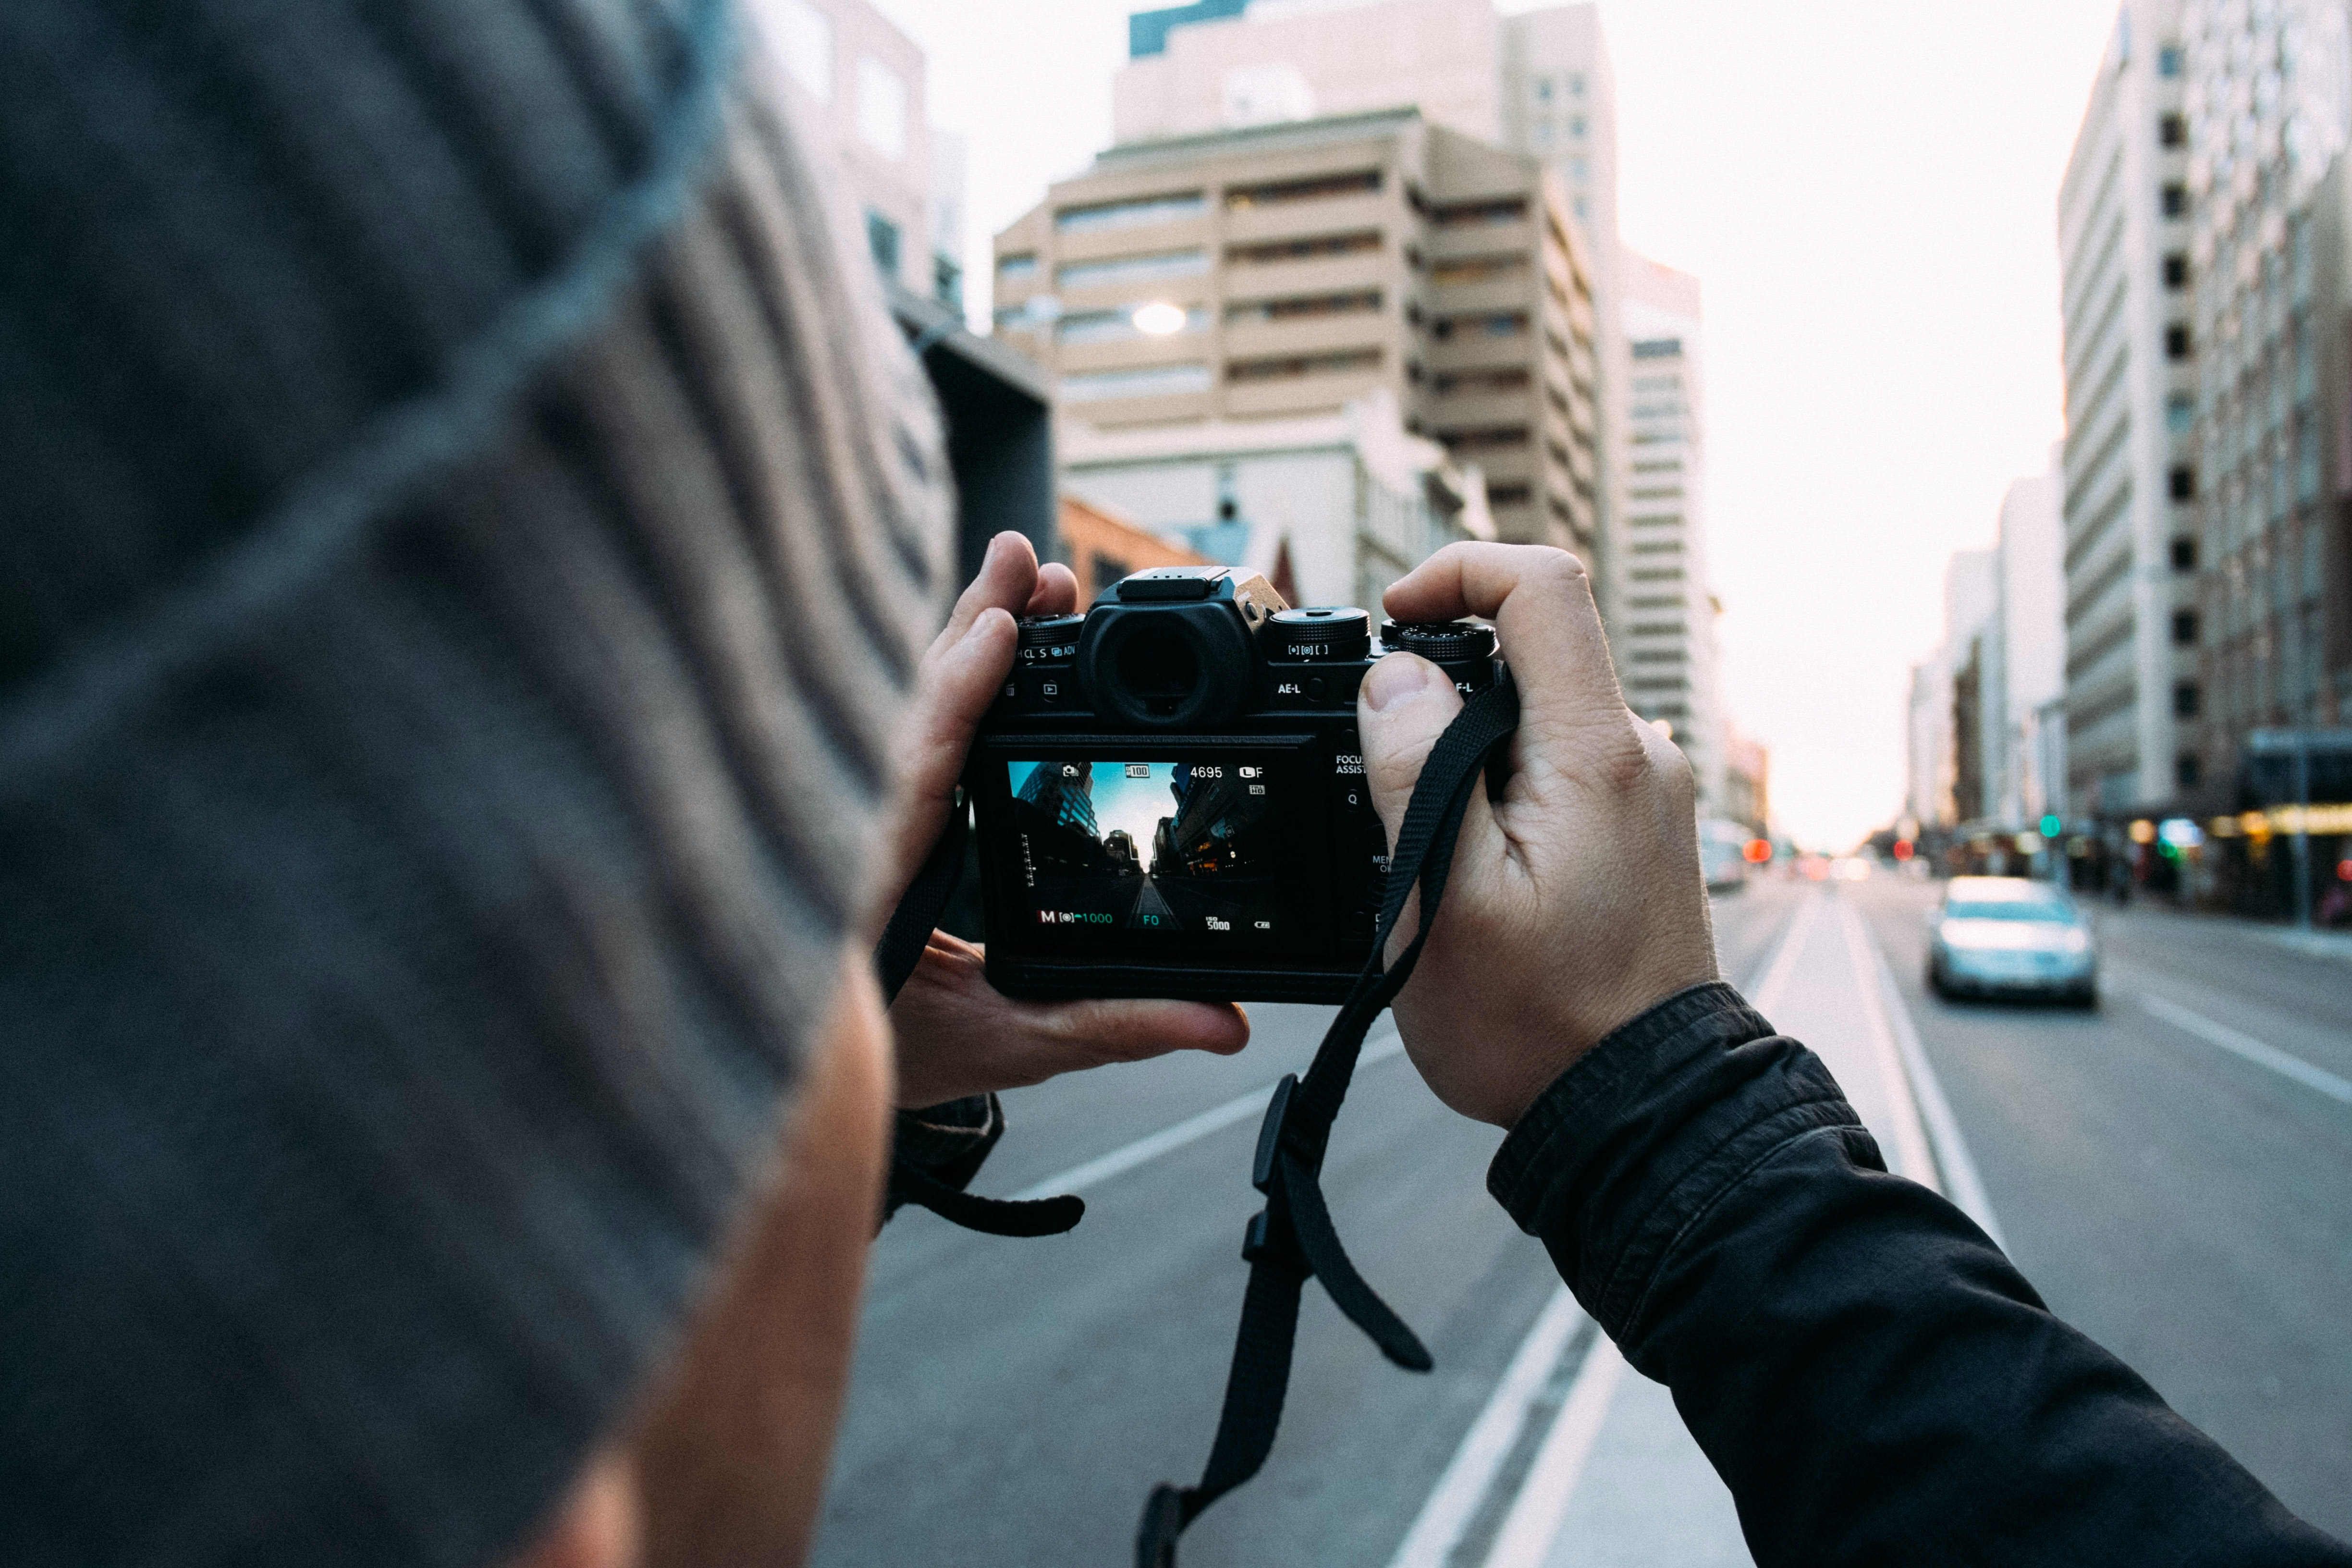 An over-the-shoulder shot of a person in a knit cap taking a photo in a city street